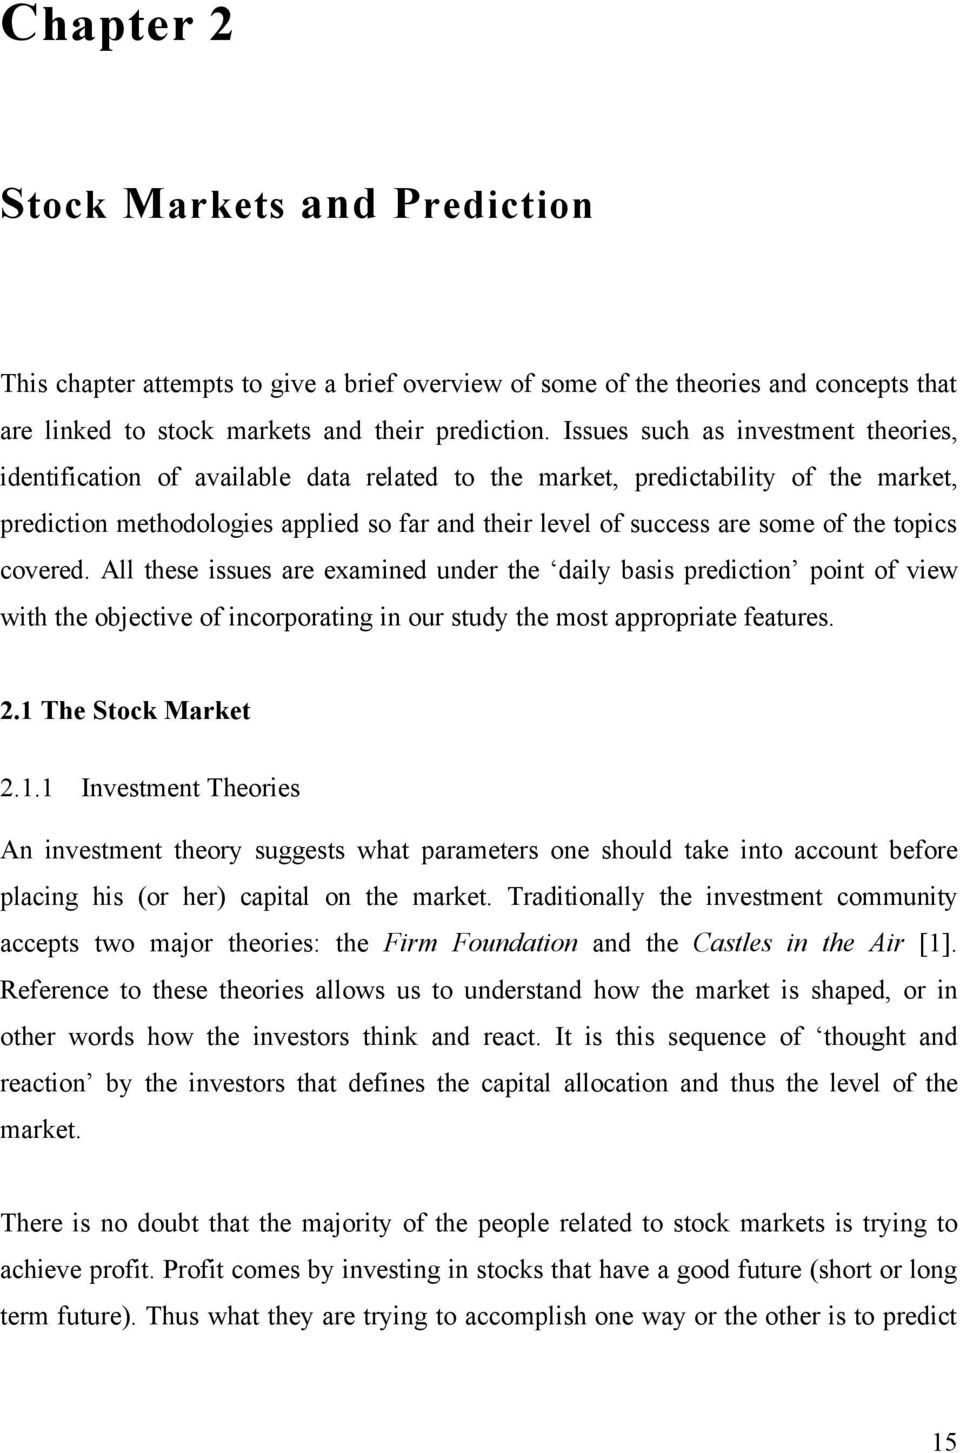 Using neural networks and genetic algorithms to predict stock market returns